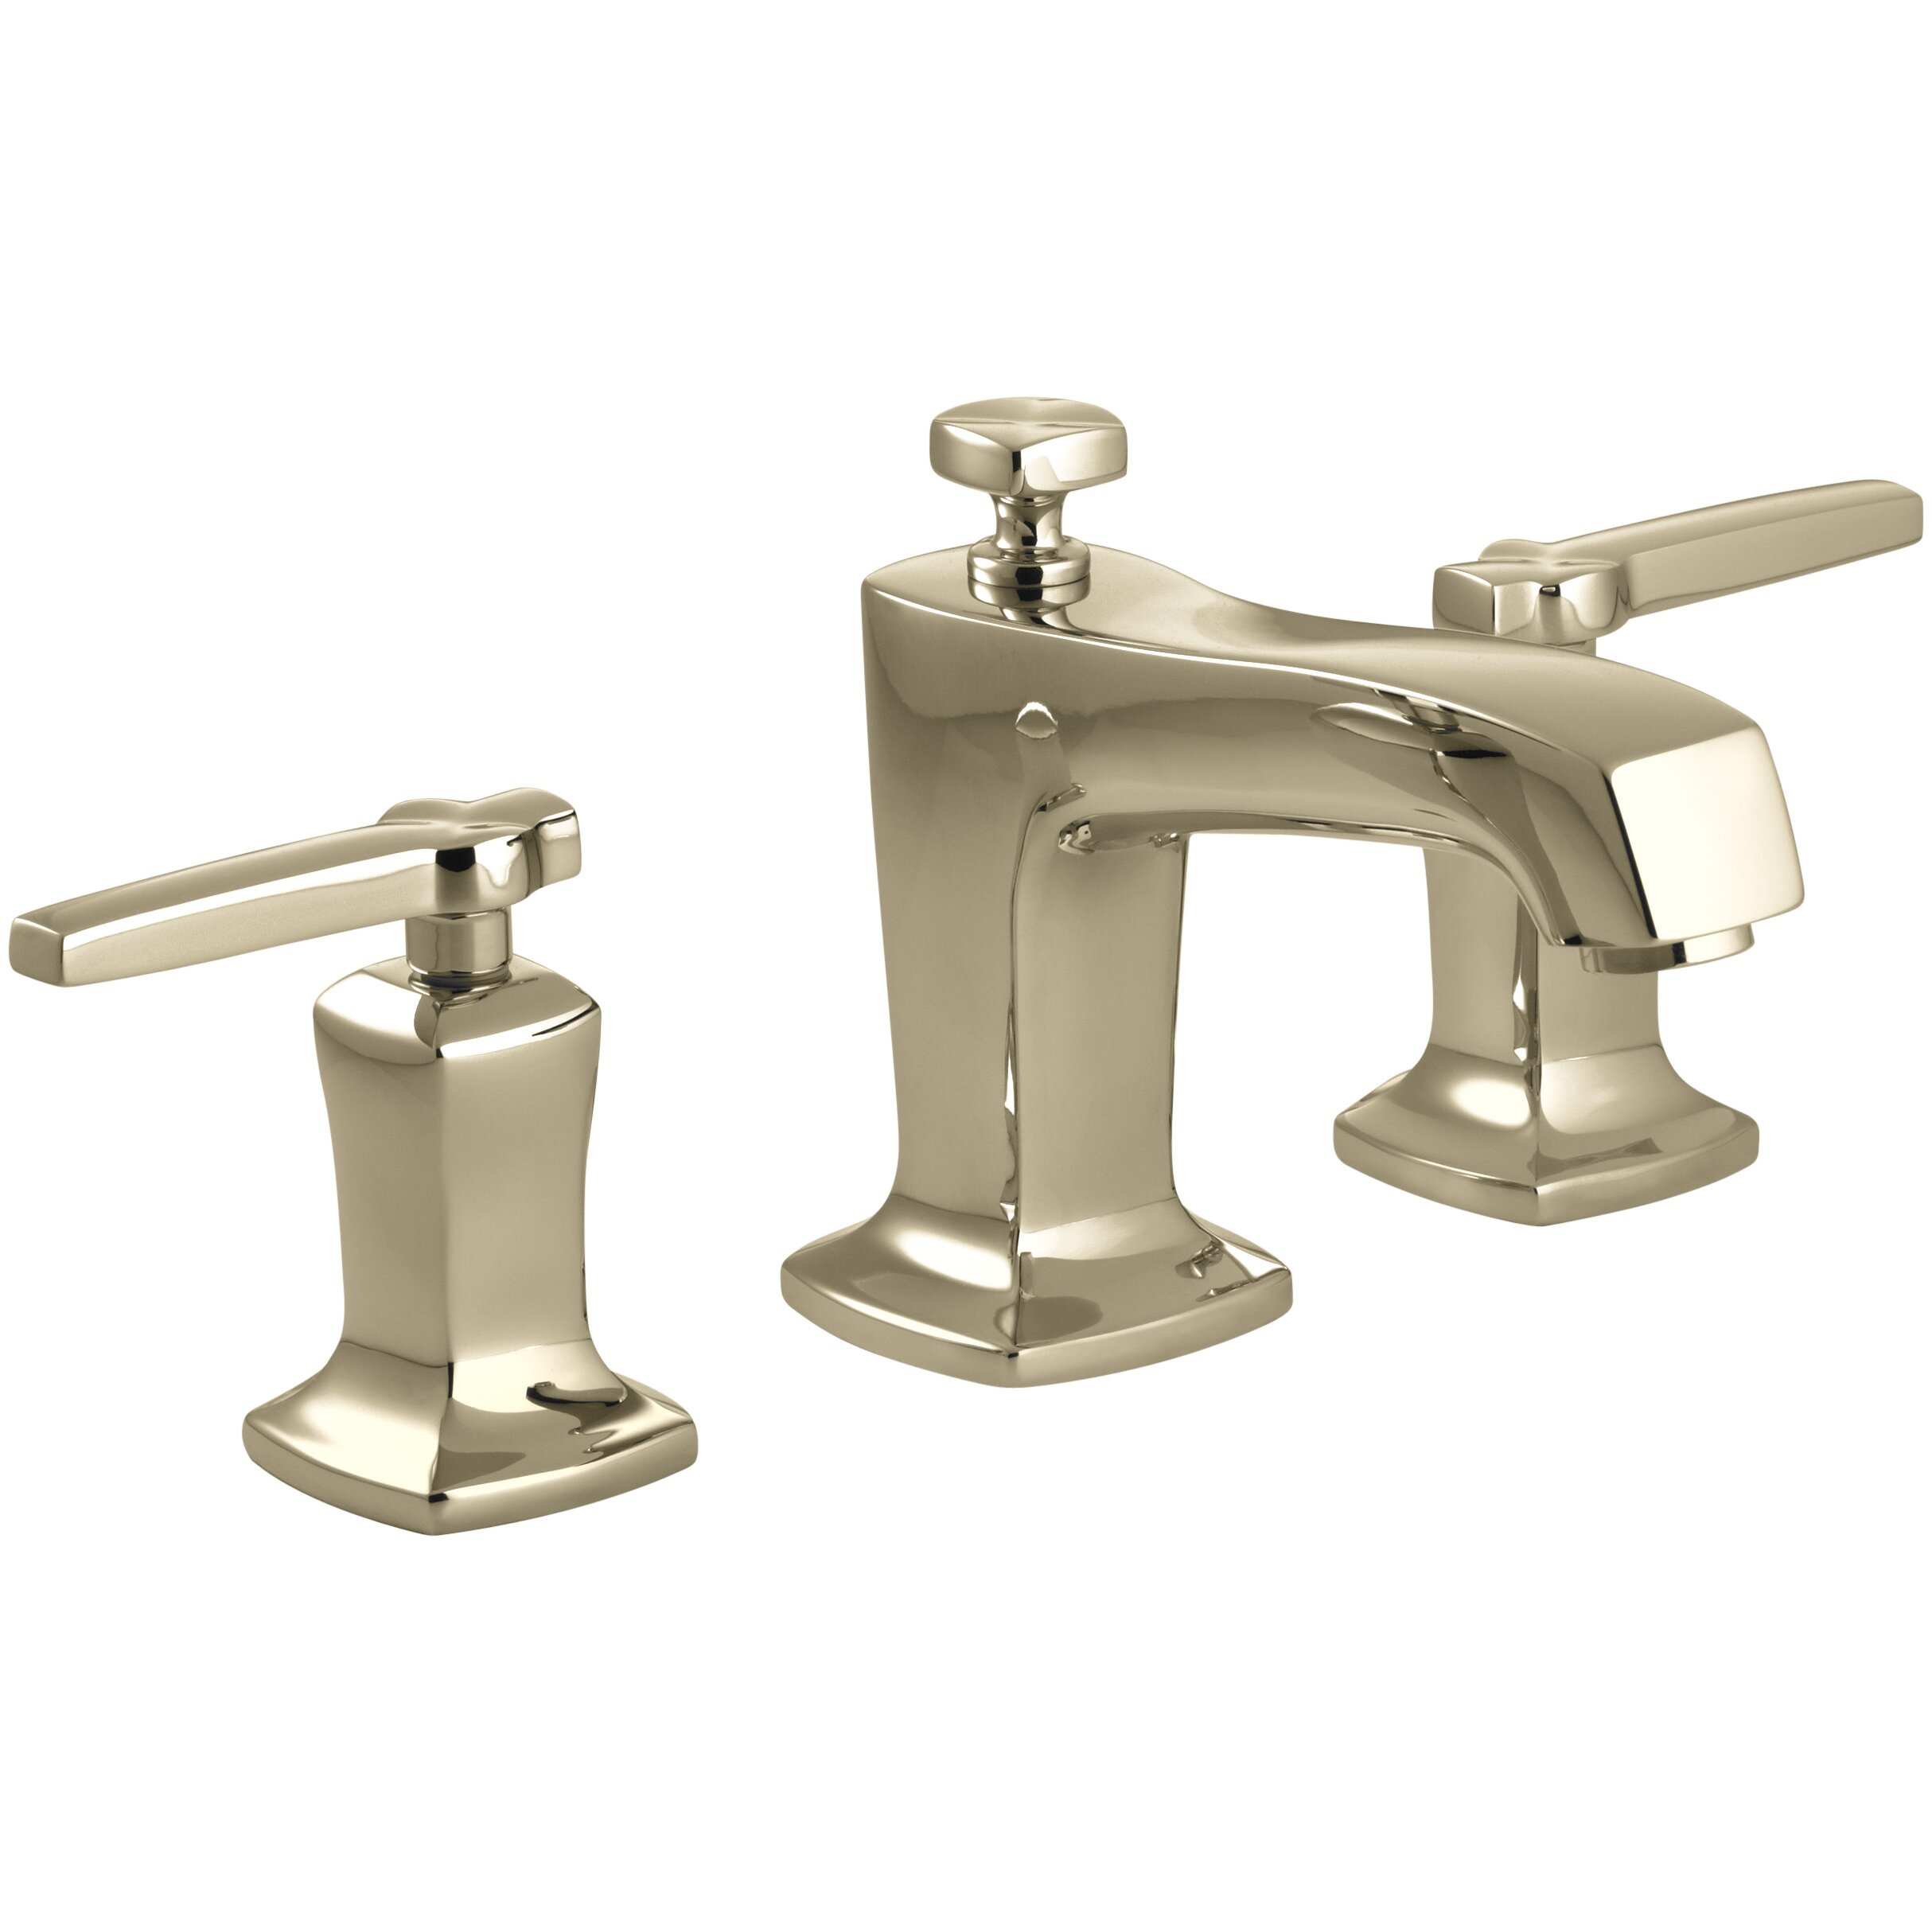 Kohler Margaux Widespread Bathroom Sink Faucet with Lever Handles ...